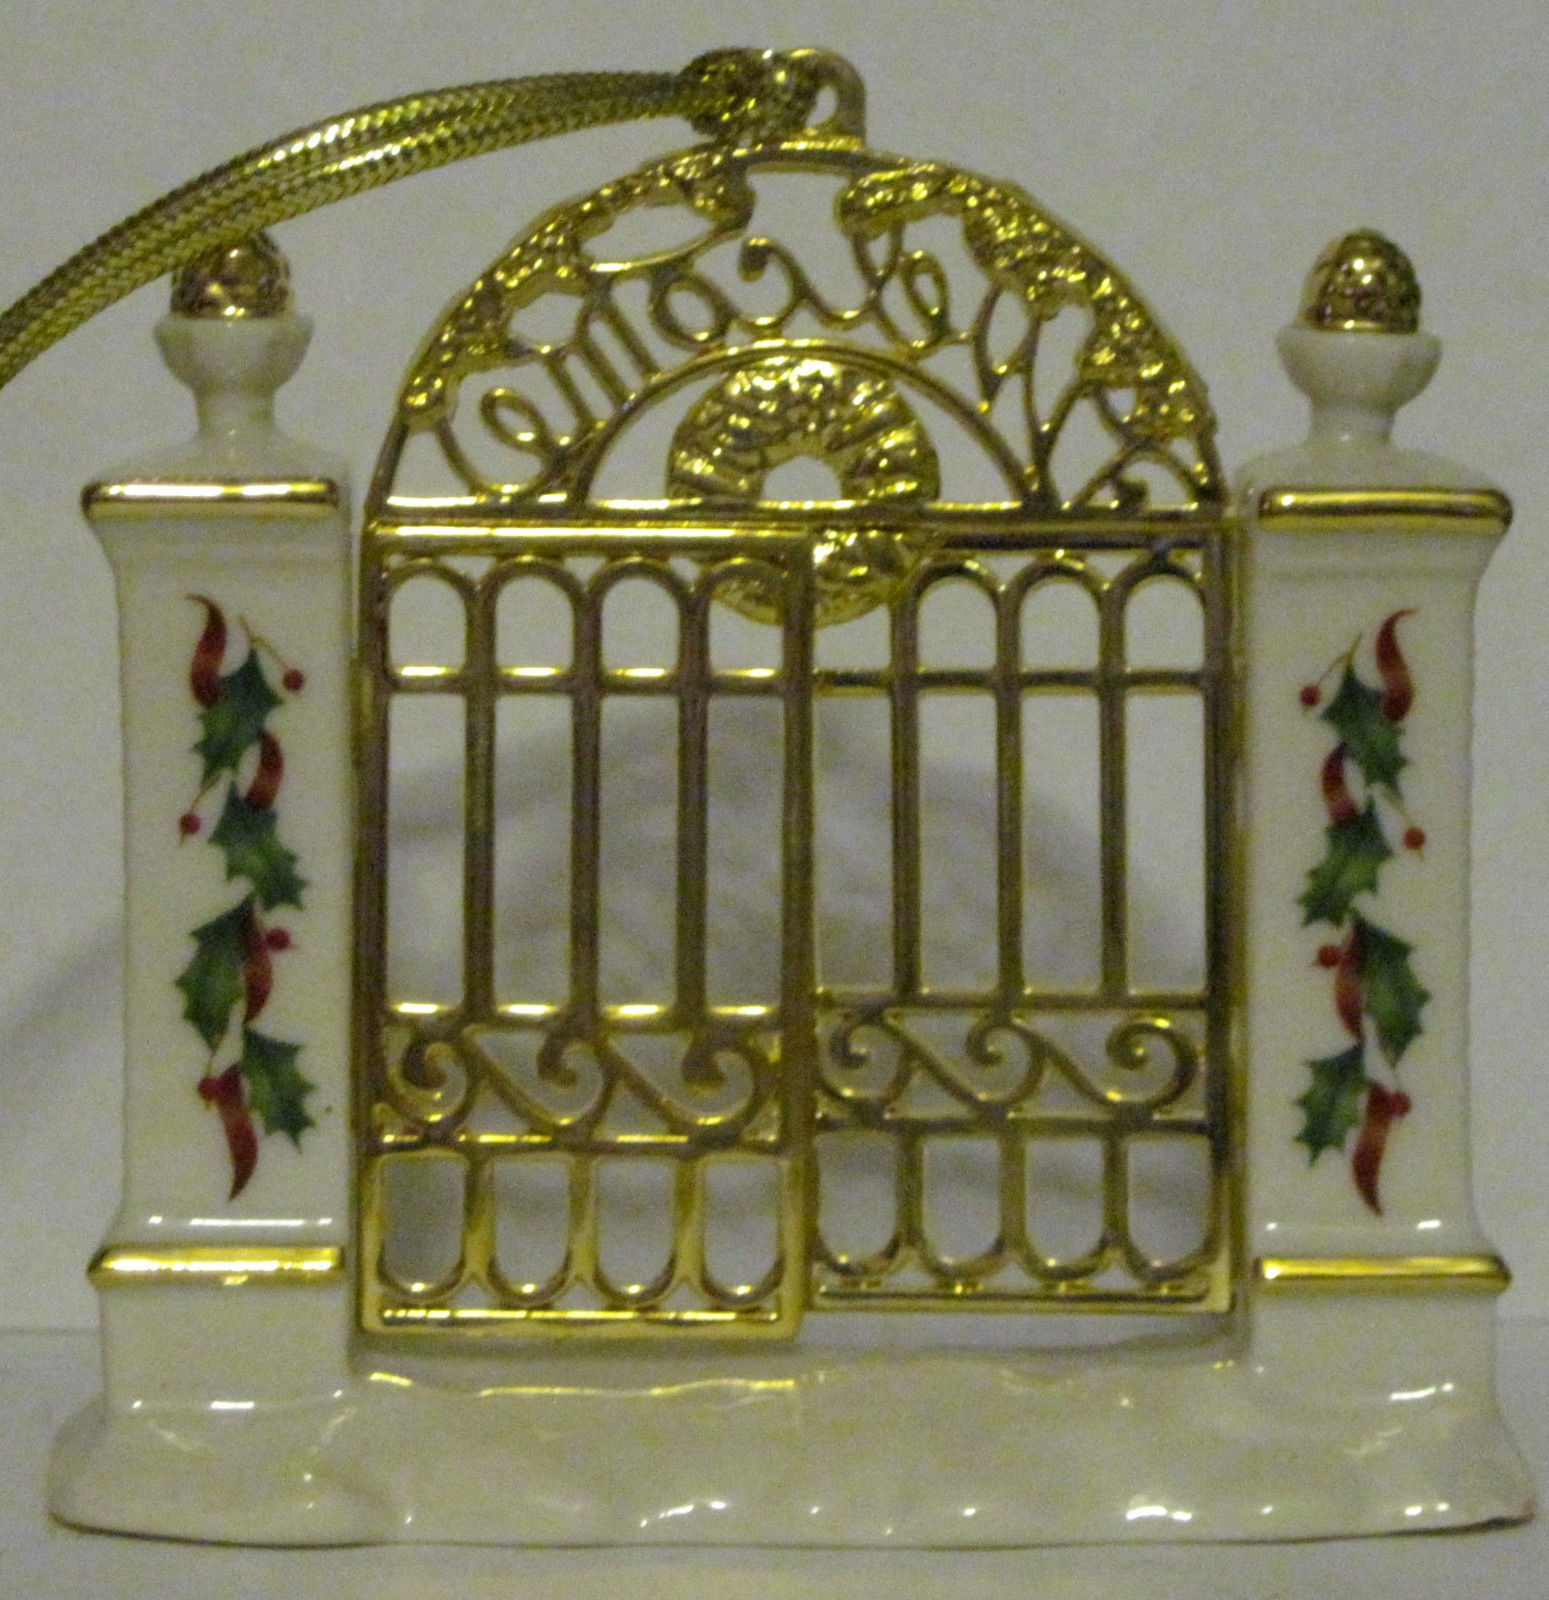 NIB Lenox 2008 Annual First Year in New Home Christmas Ornament Welcome Gate image 5